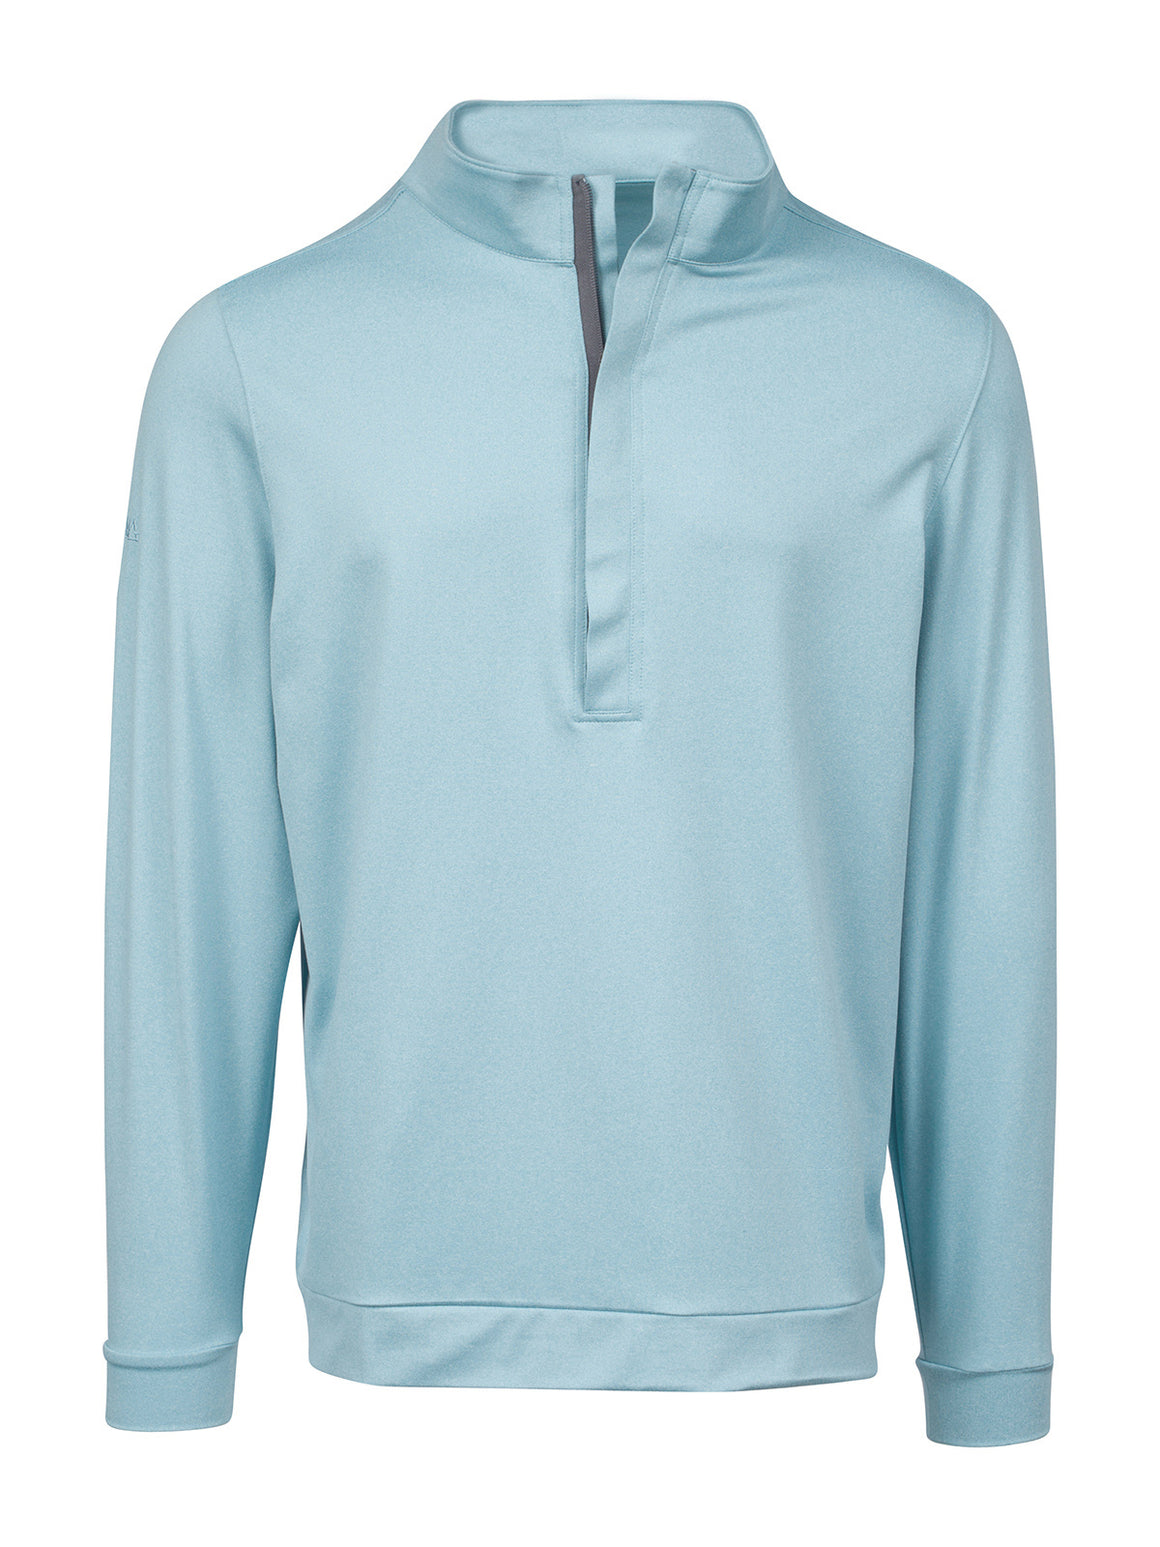 Hightower Half Zip - Ice Blue Heather